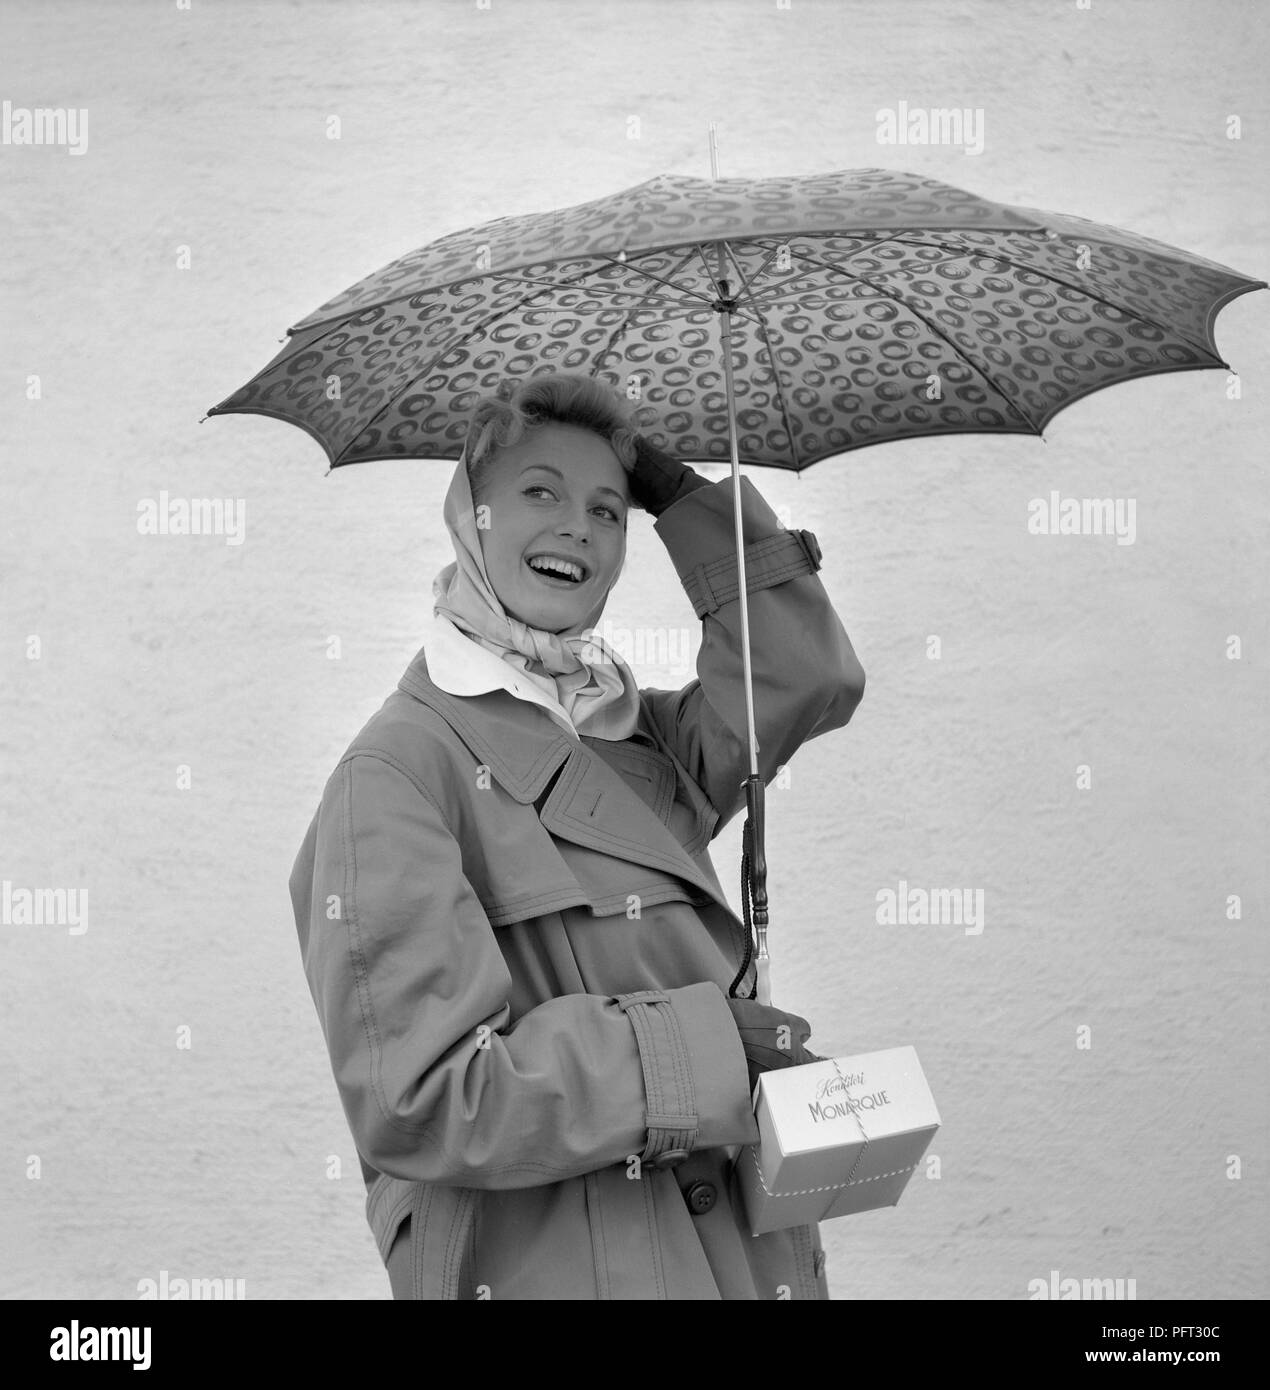 1950s Woman With Umbrella A Young Woman Is Holding An Umbrella On A